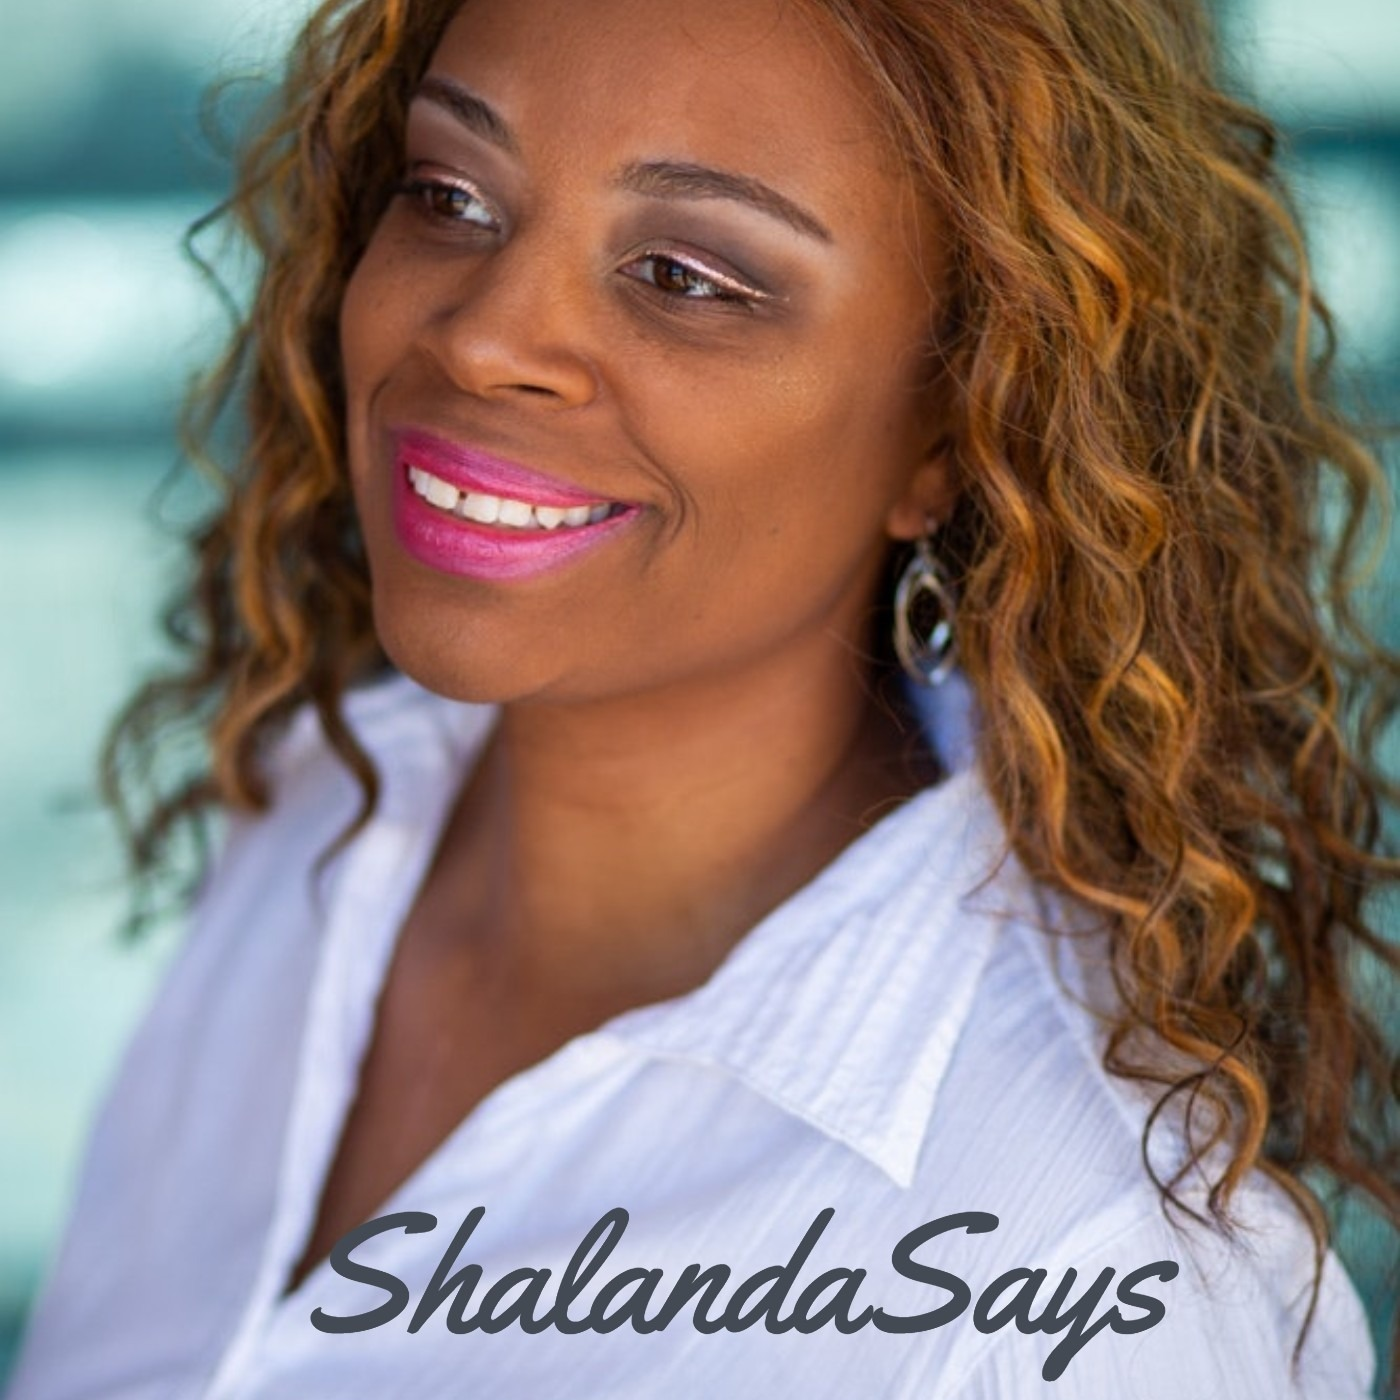 ShalandaSays Meet Author Cynthia MacGregor